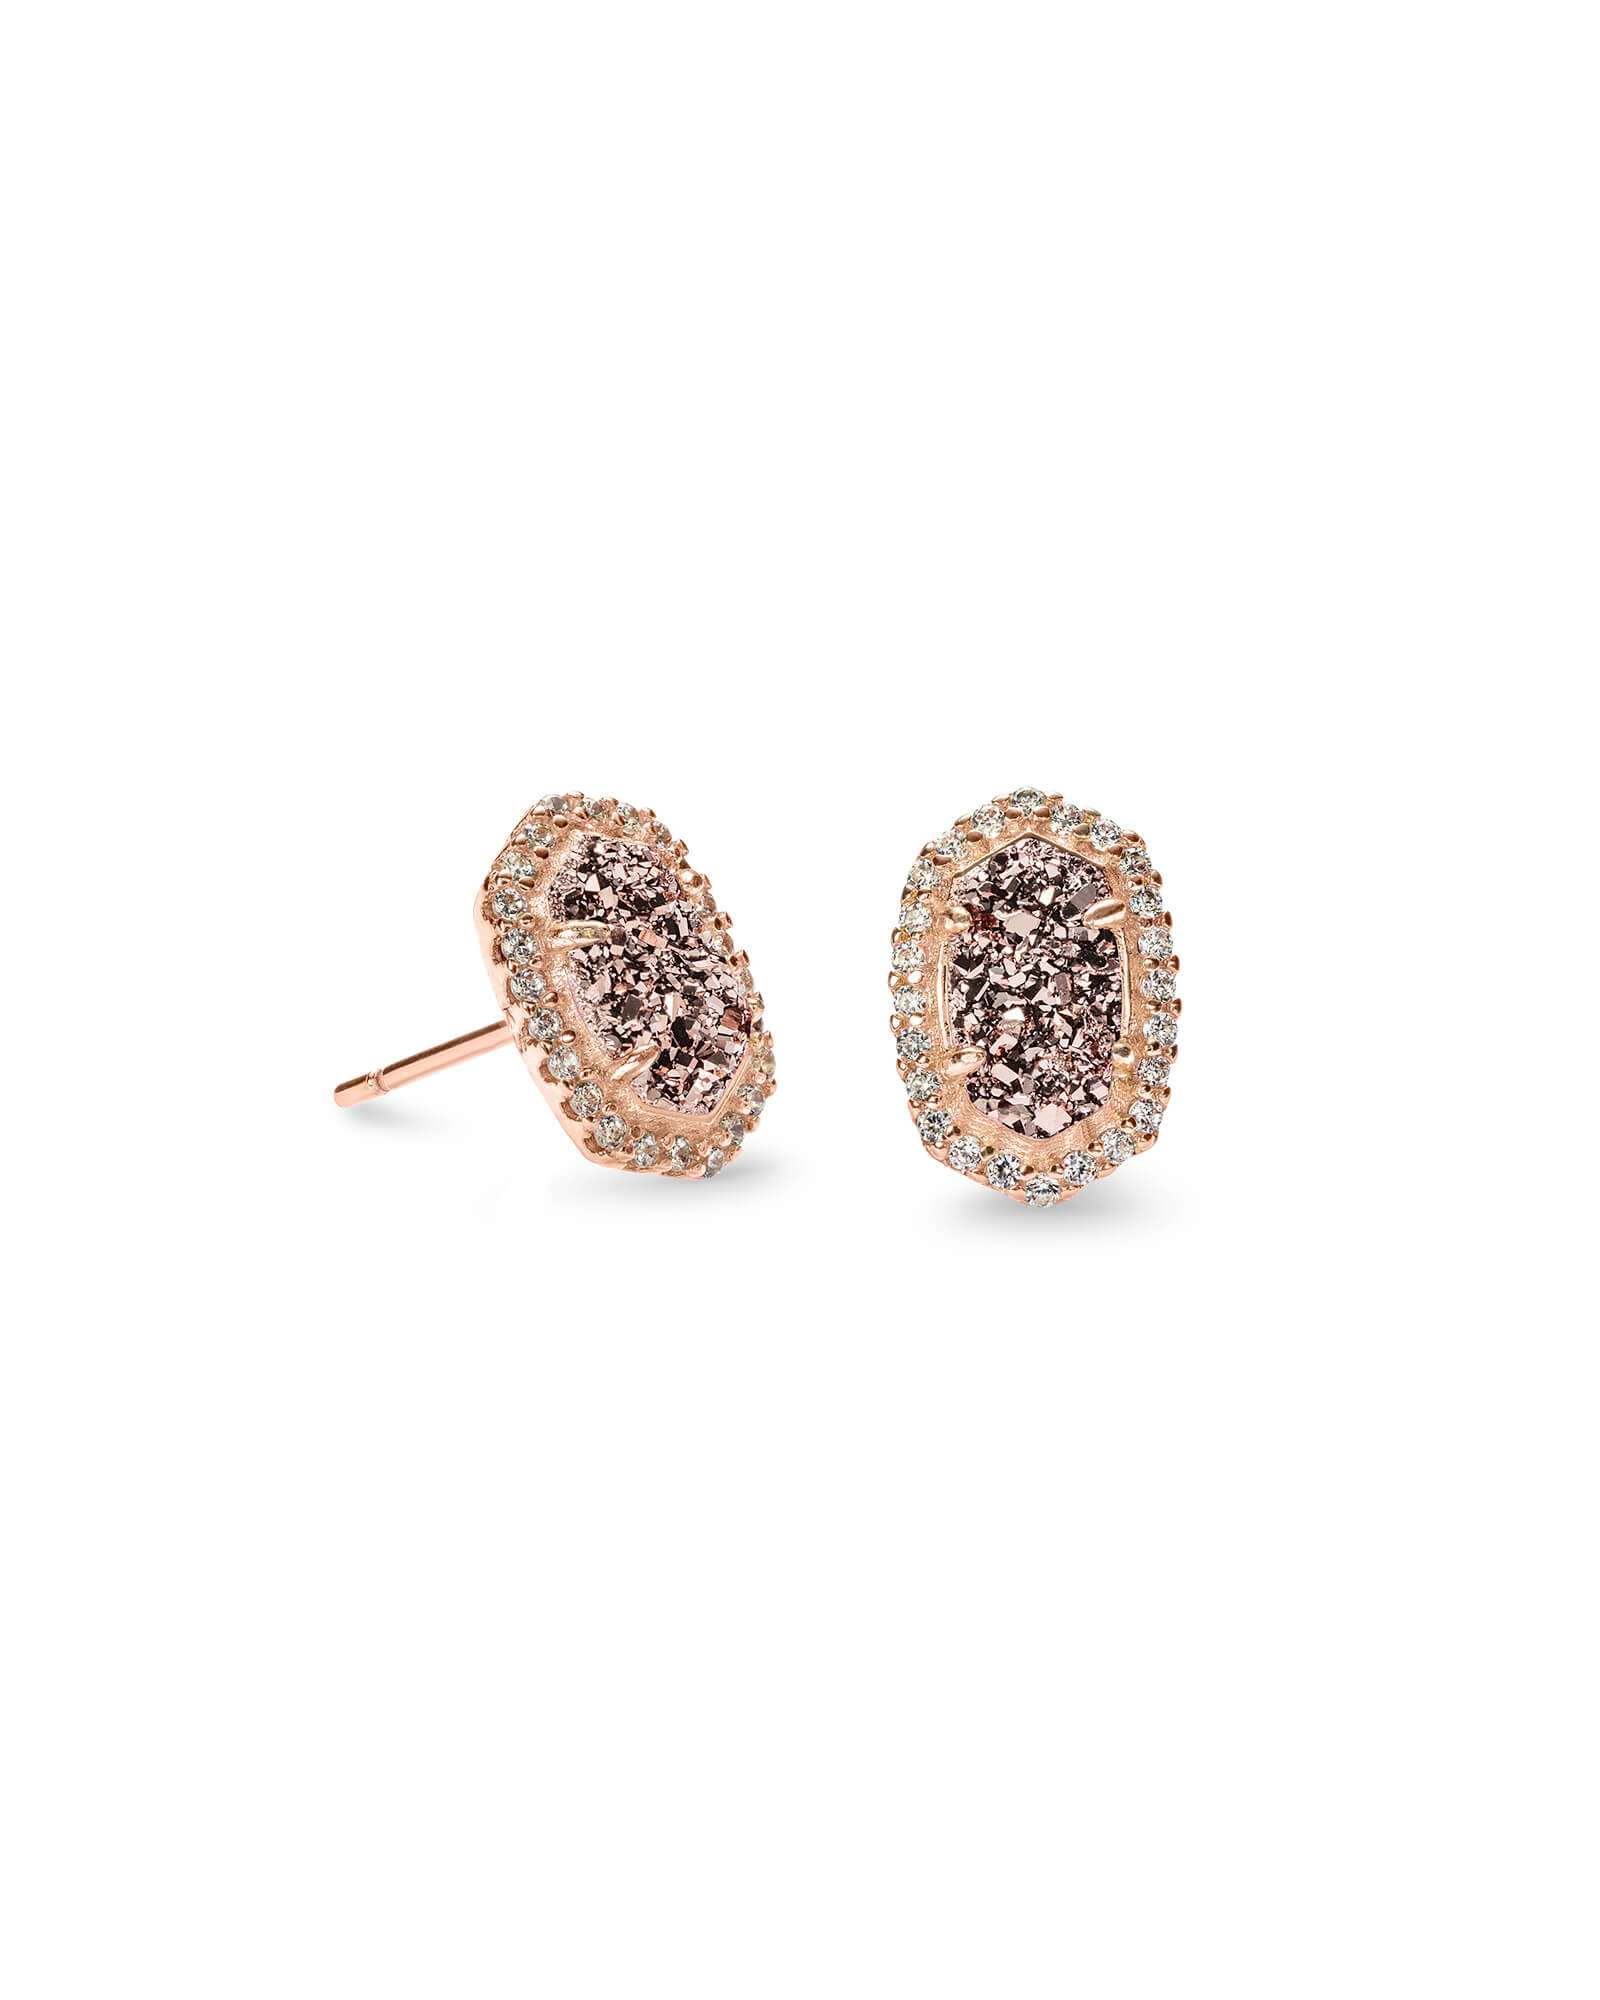 Cade Rose Gold Stud Earrings in Rose Gold Drusy